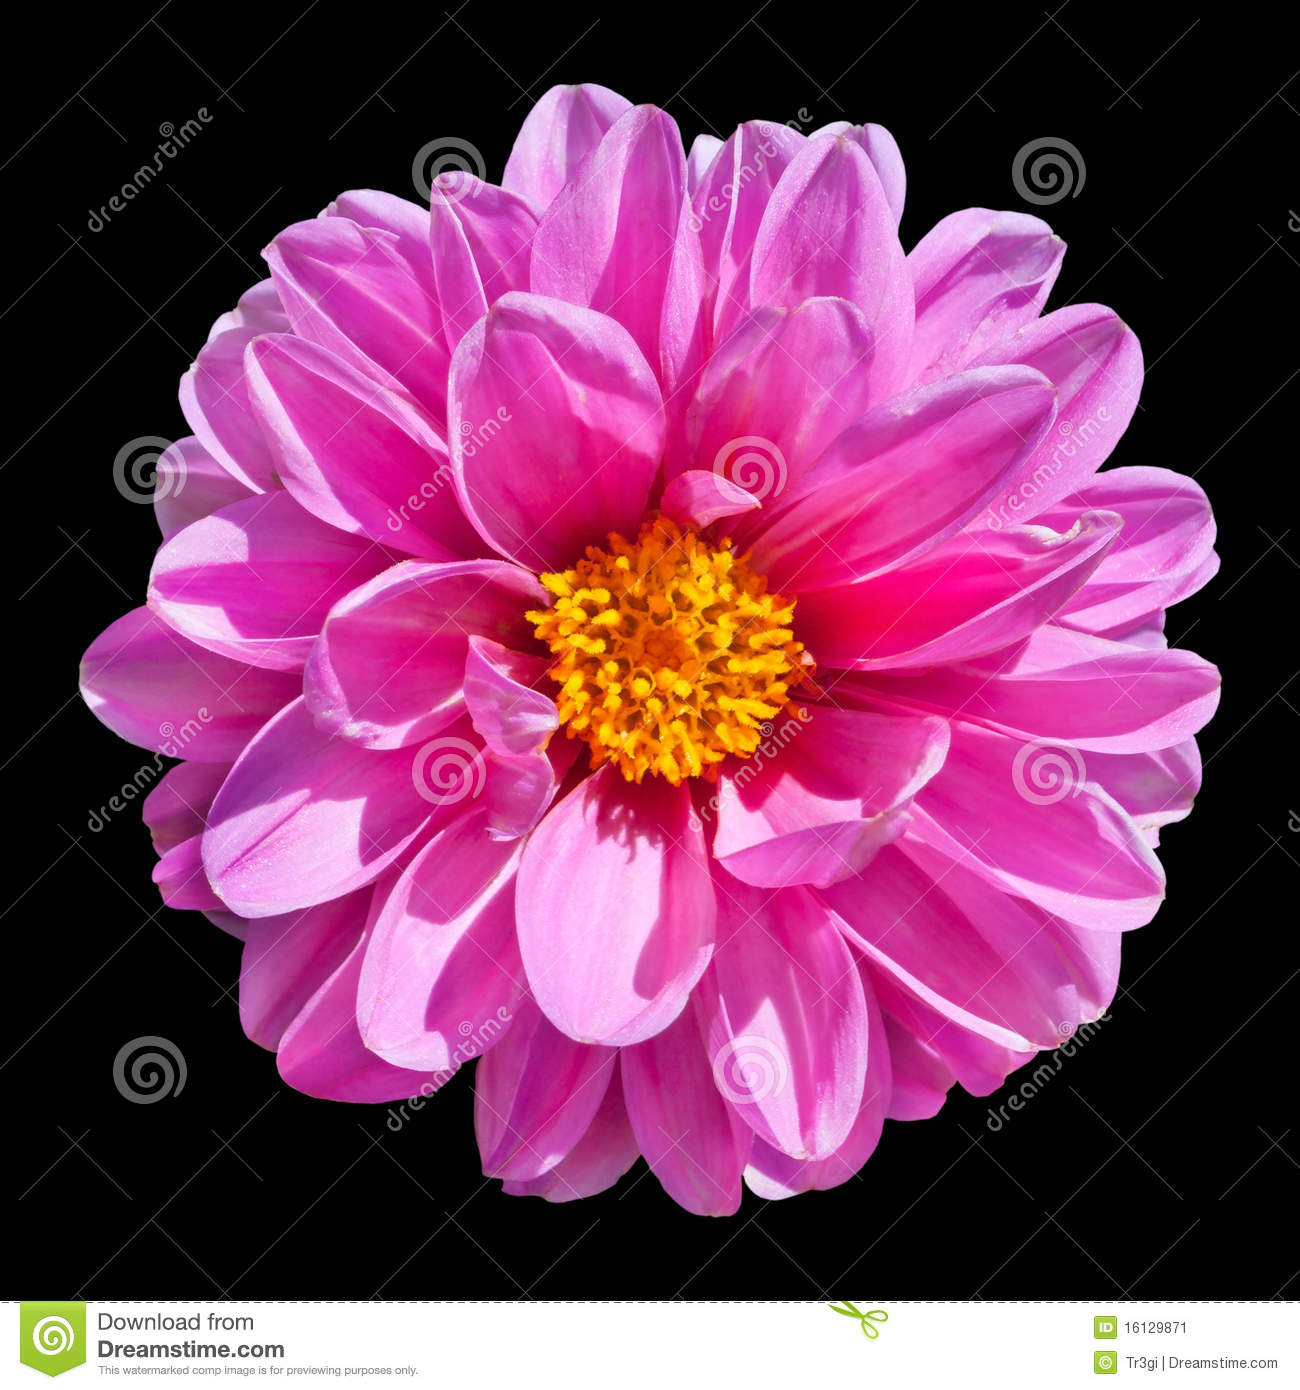 Pink Dahlia Flower Isolated On Black Background Stock ...